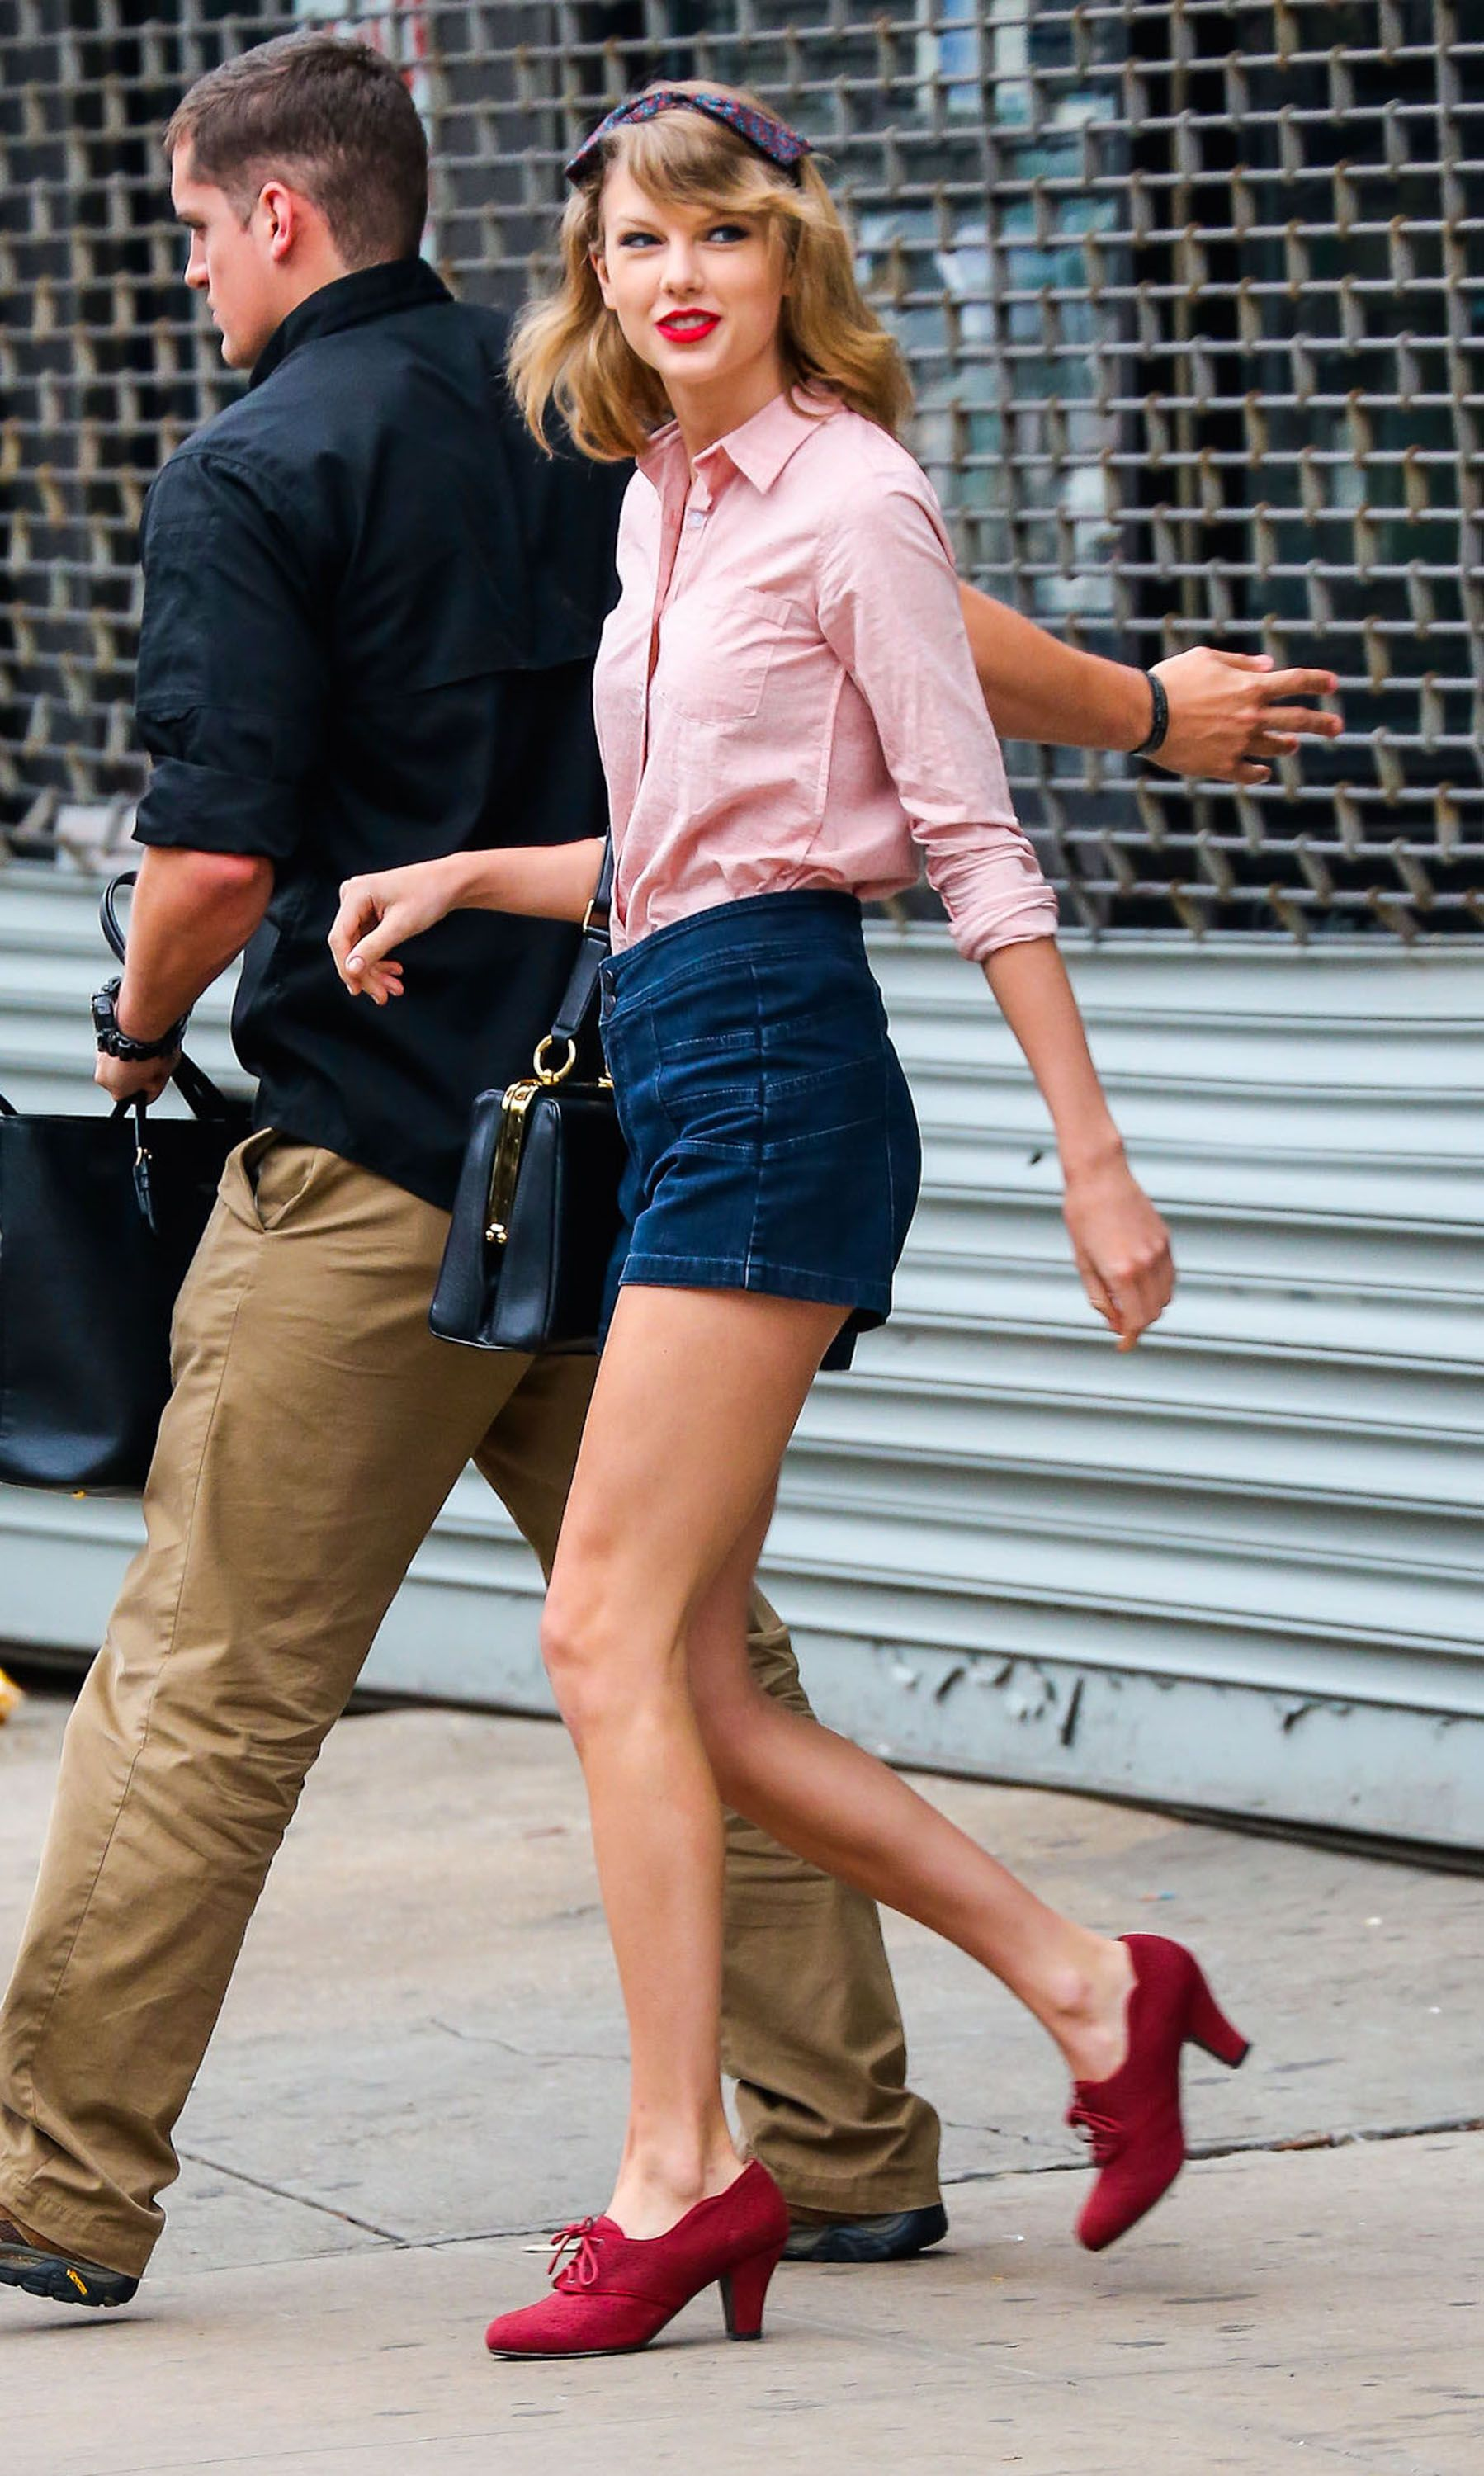 Ed sheeran flannel shirt  Taylor Swift Out Of New York Gym  Celebrities  Pinterest  Taylor